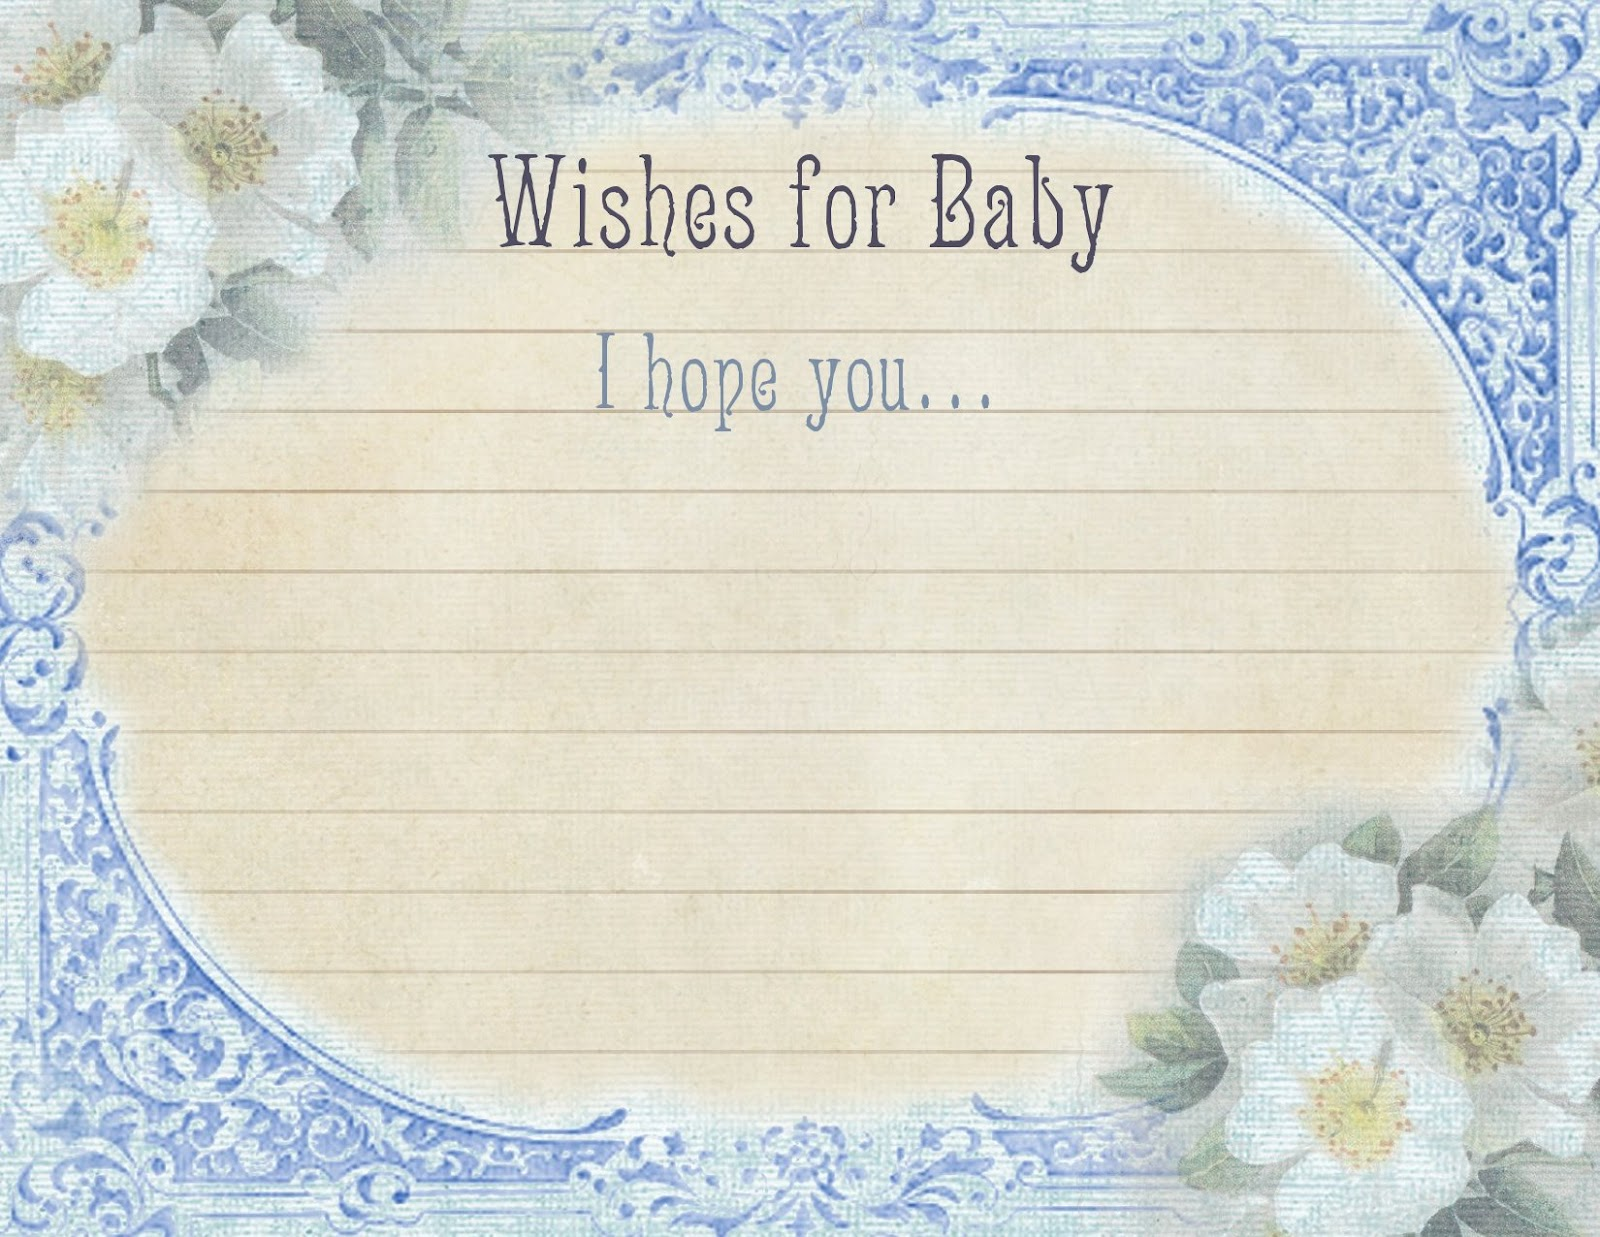 On baby boy message new baby boy wishes message new baby boy newborn baby girl greeting messages wedding baby boy 410 x 610 510kb baby boy quotes sc 450 x 450 530kb kristyandbryce Images